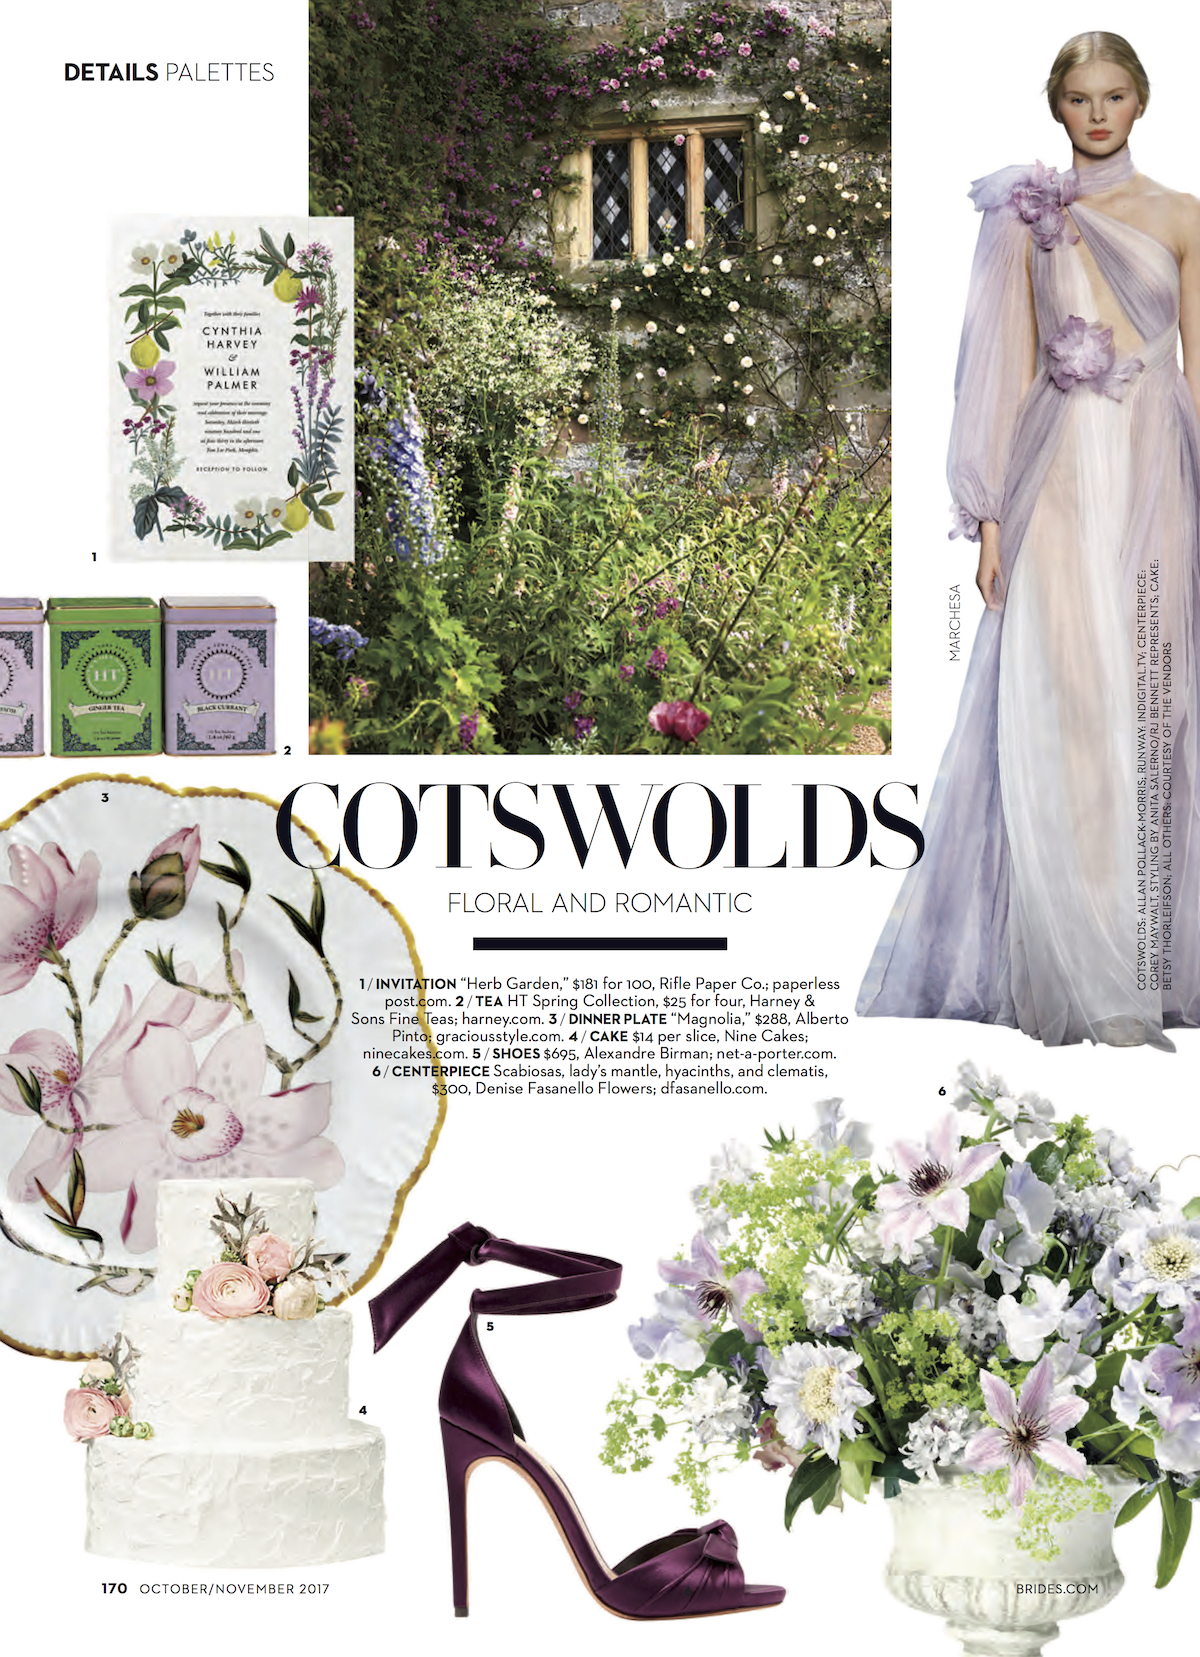 Brides Magazine - October November Issue 2017 - Details Palettes Section - Featuring Denise Fasanello Flowers.jpg